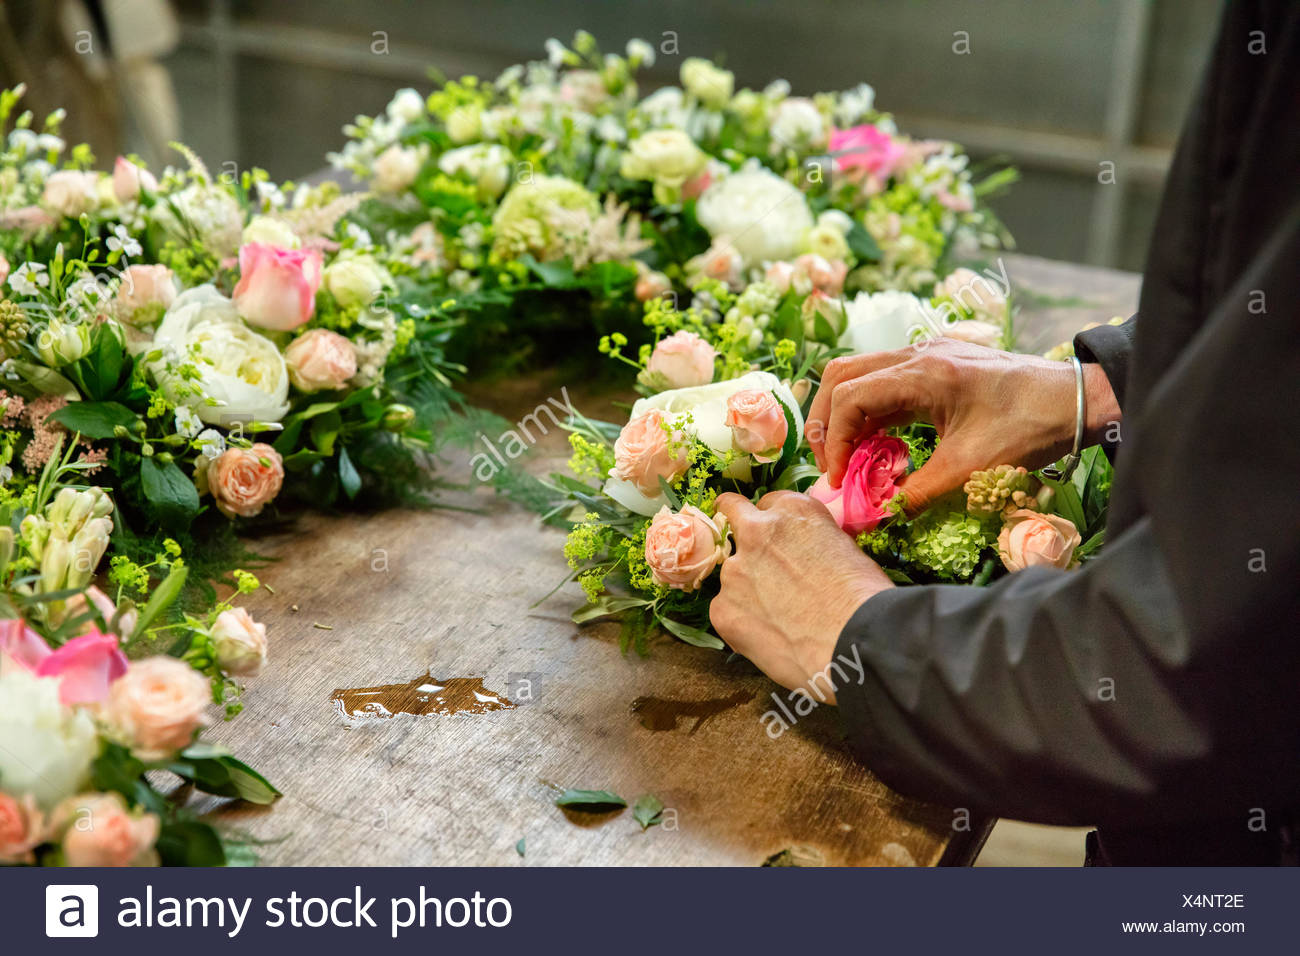 Commercial flower arranging. A florist, a woman working on  a floral decoration  at a workbench. - Stock Image